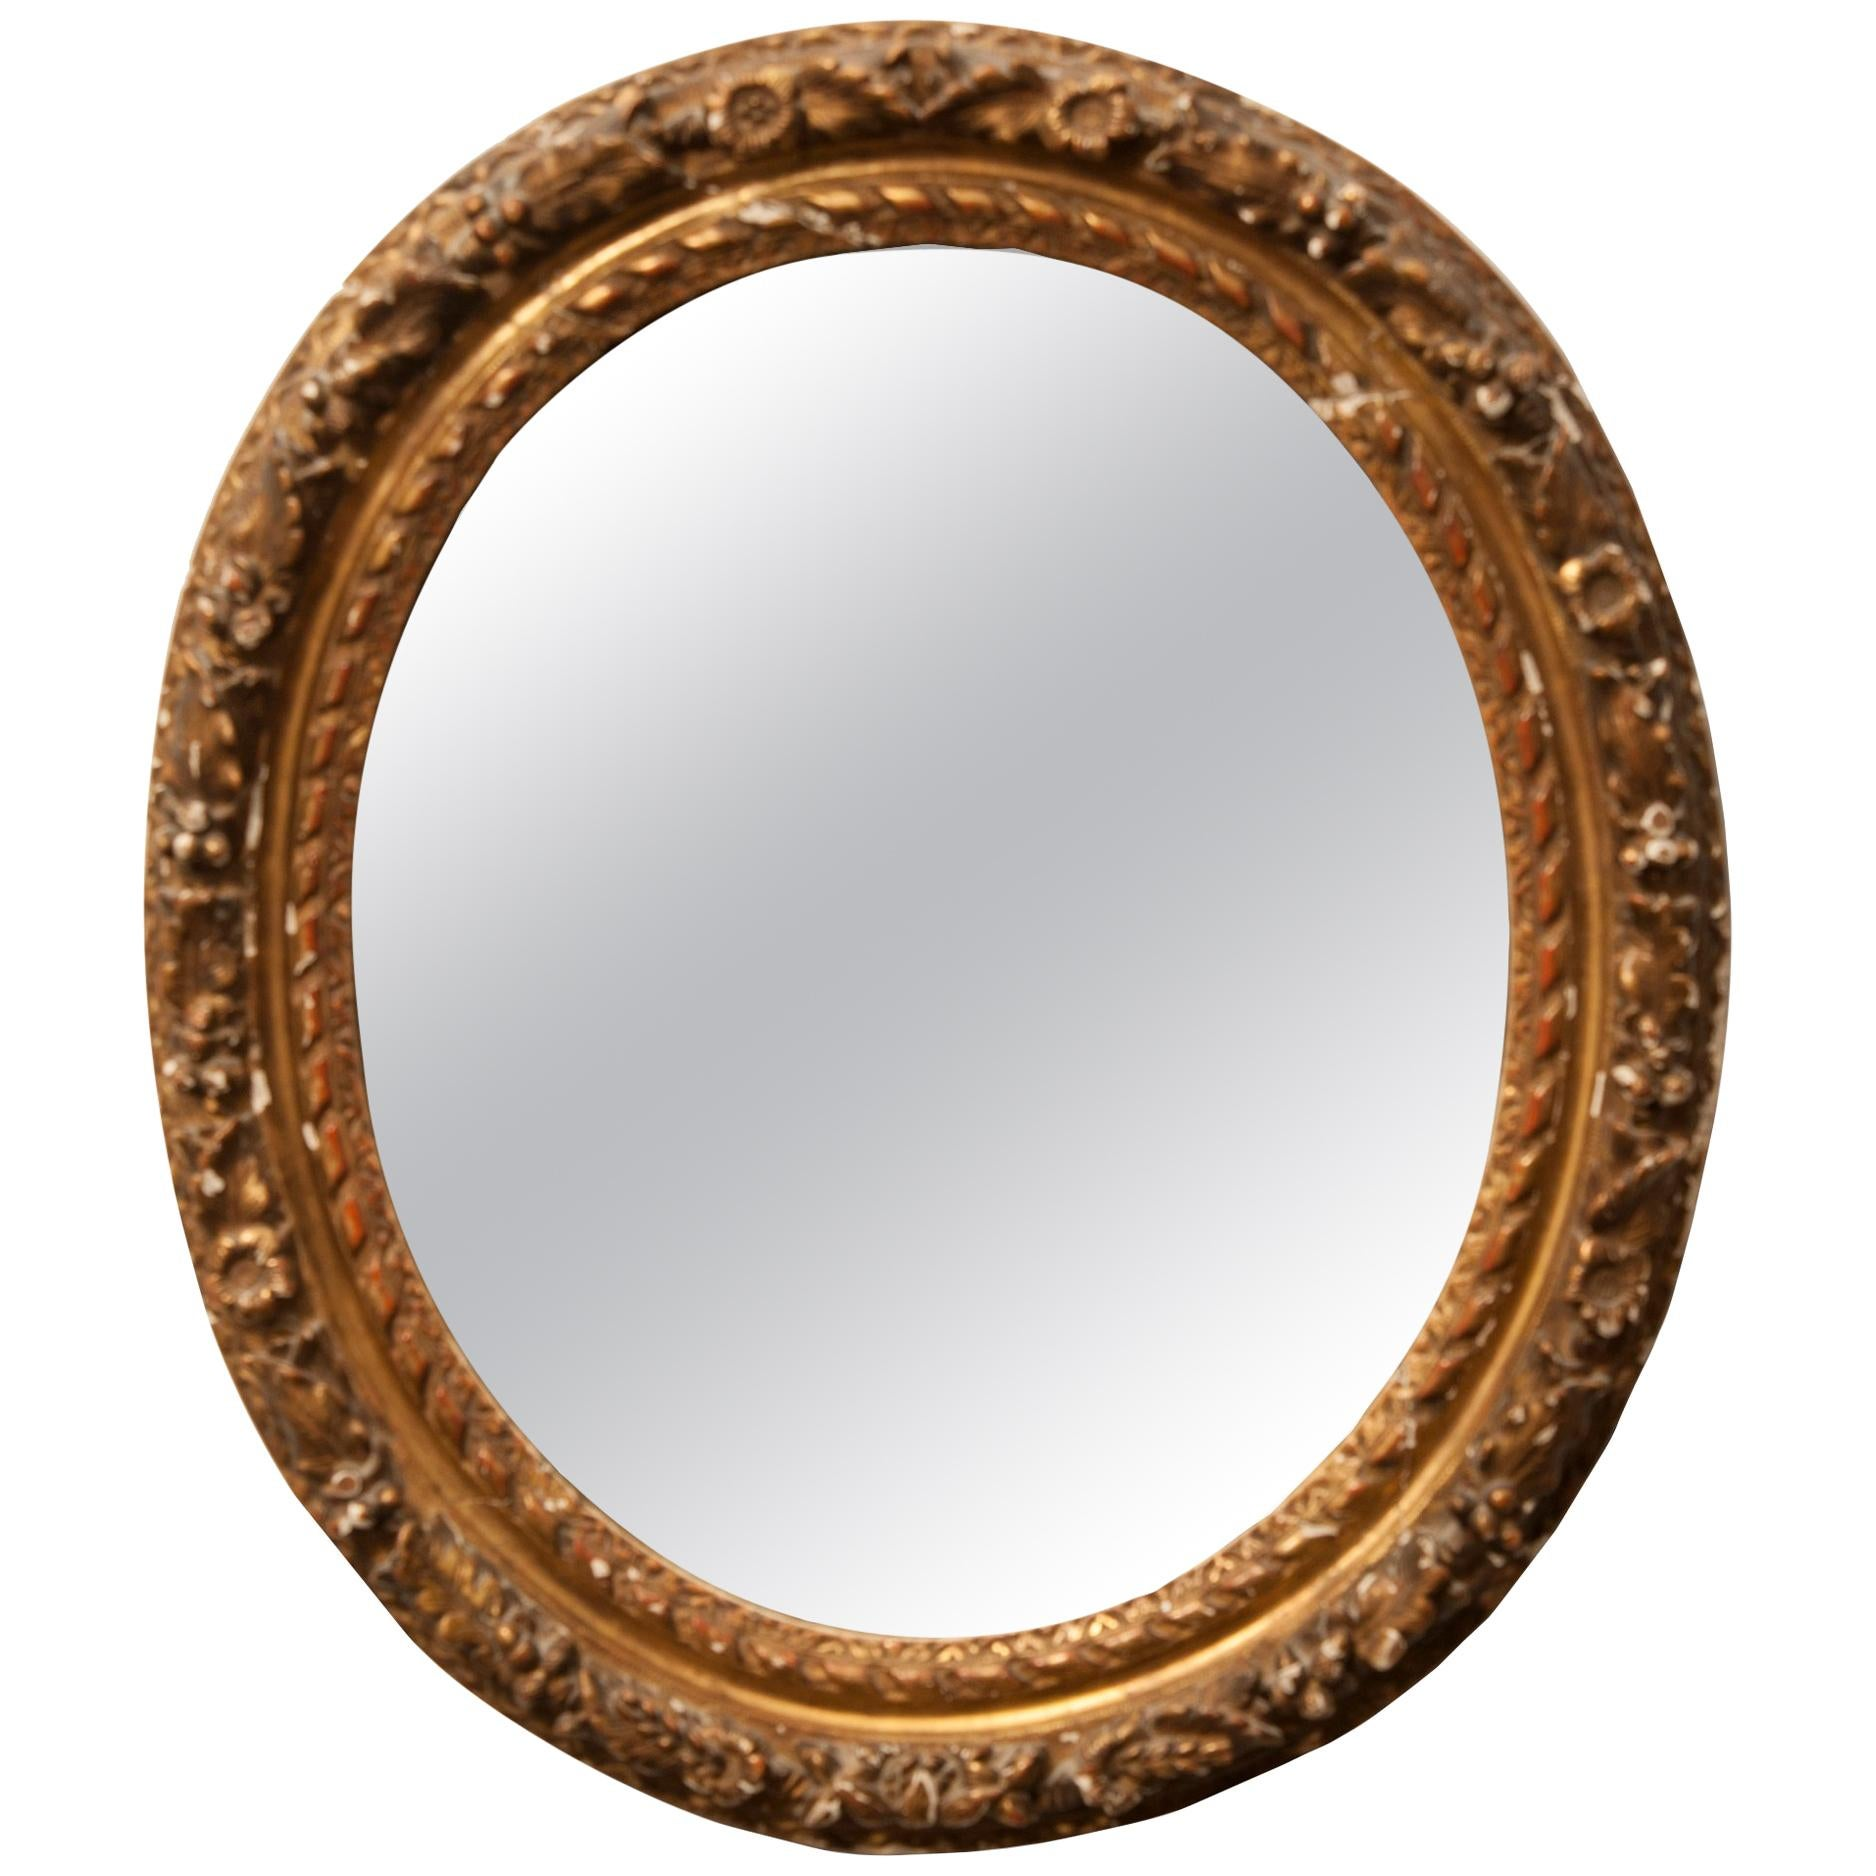 French Louis XVI Period Carved Oval Mirror, Neoclassical Style